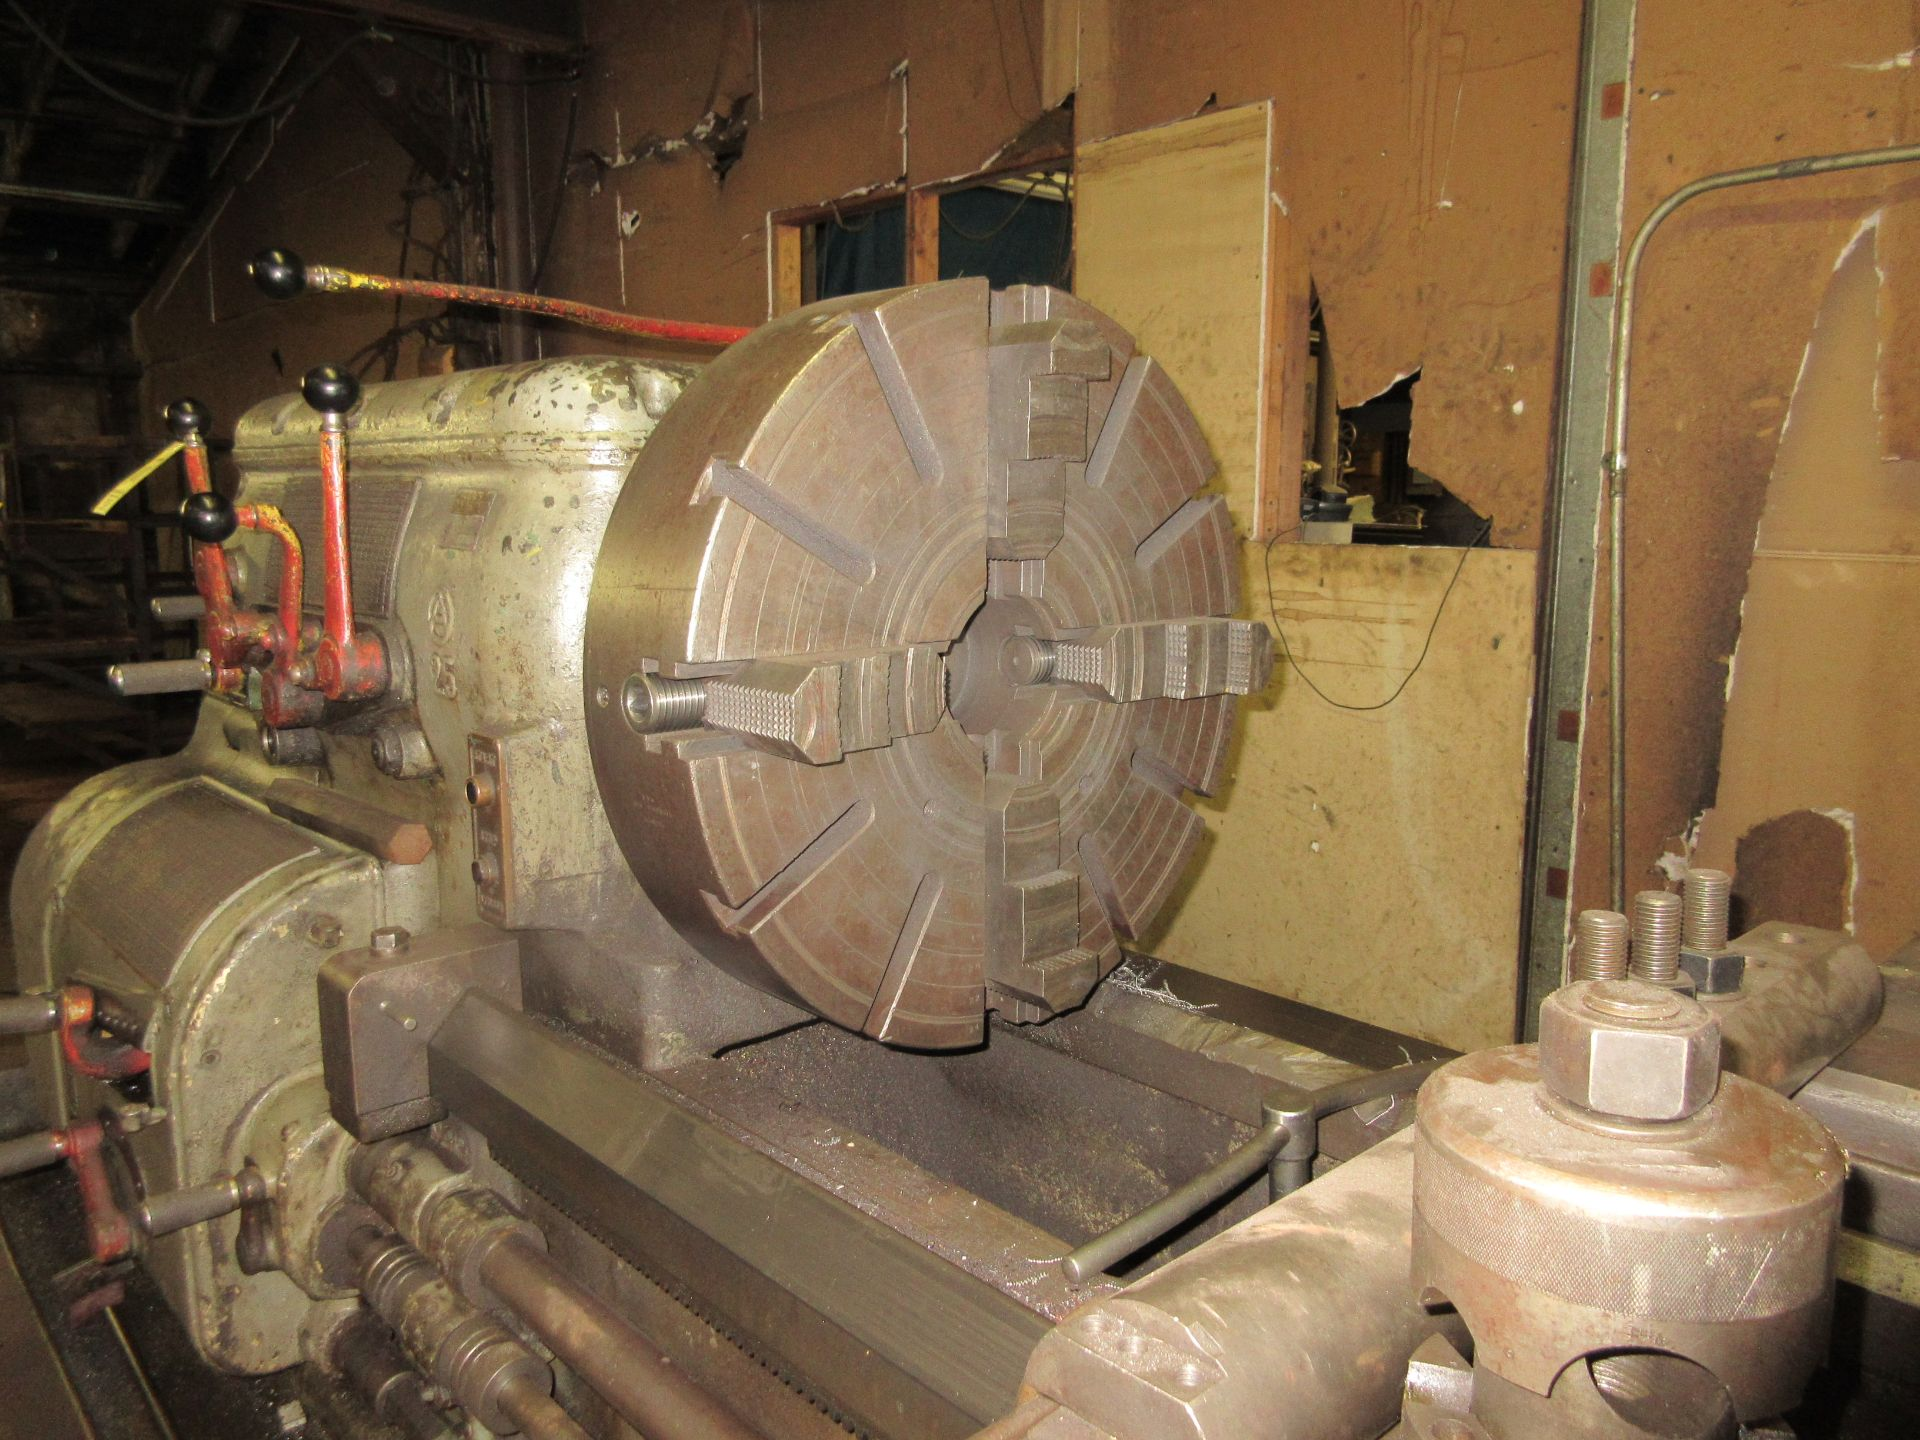 """(1) Axelson 25"""" X 96"""" Lathe S/N 24"""" 4 Jaw Chuck, Steady Rest & Taper Attachment, Tool Post - Image 3 of 5"""